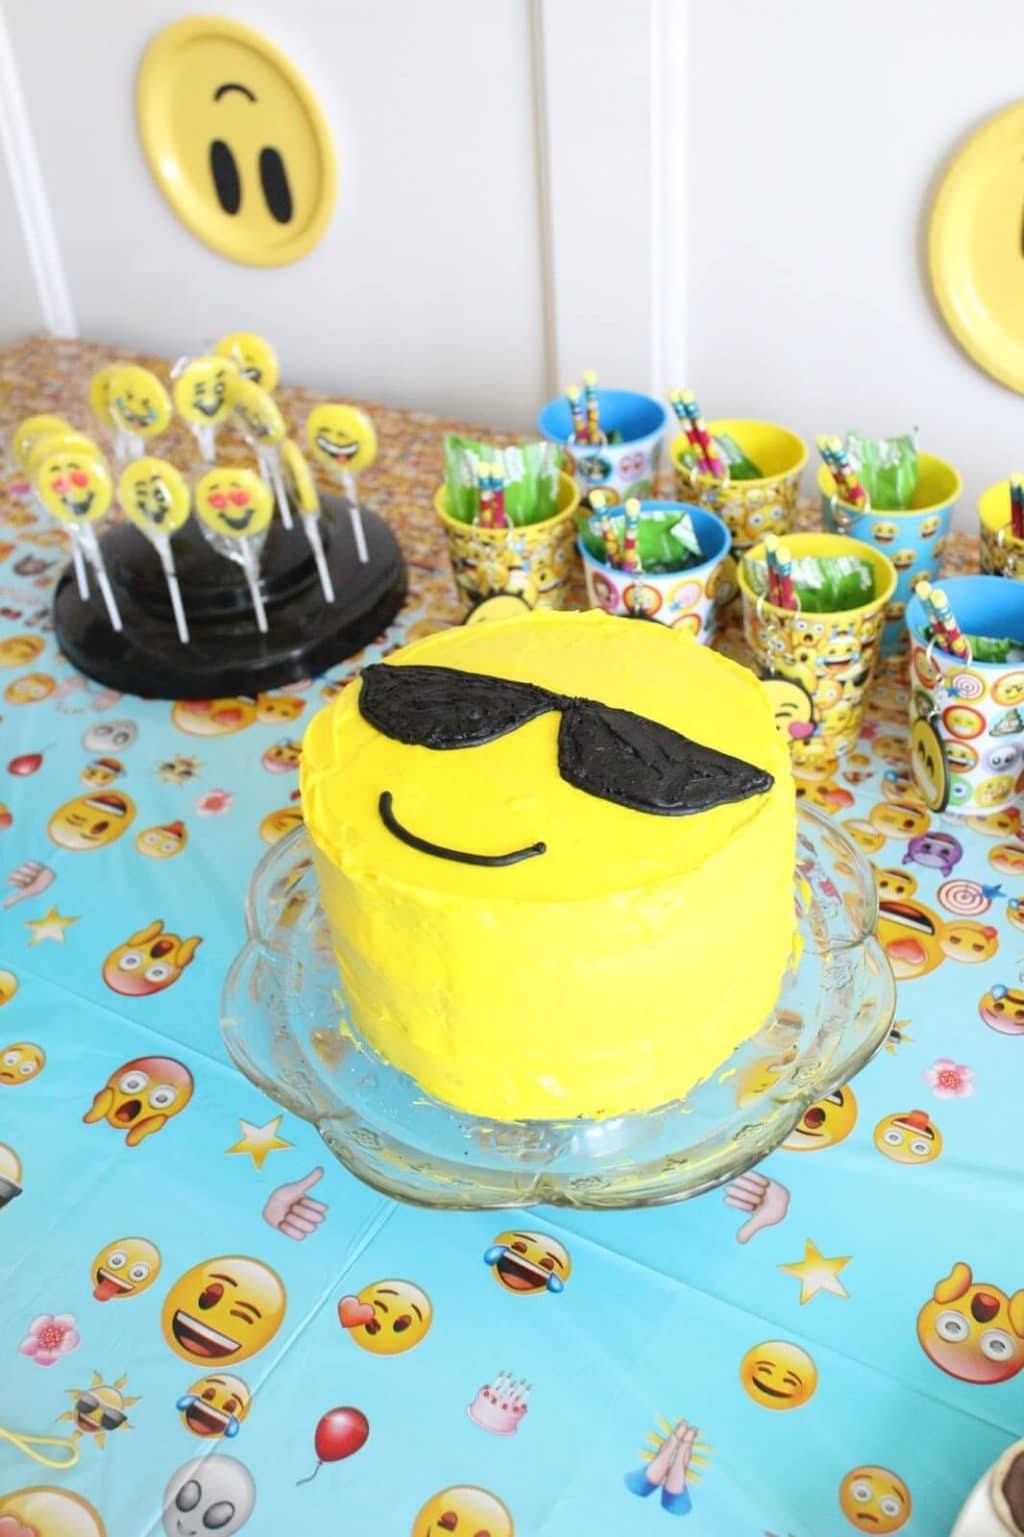 DIY easy emoji cake